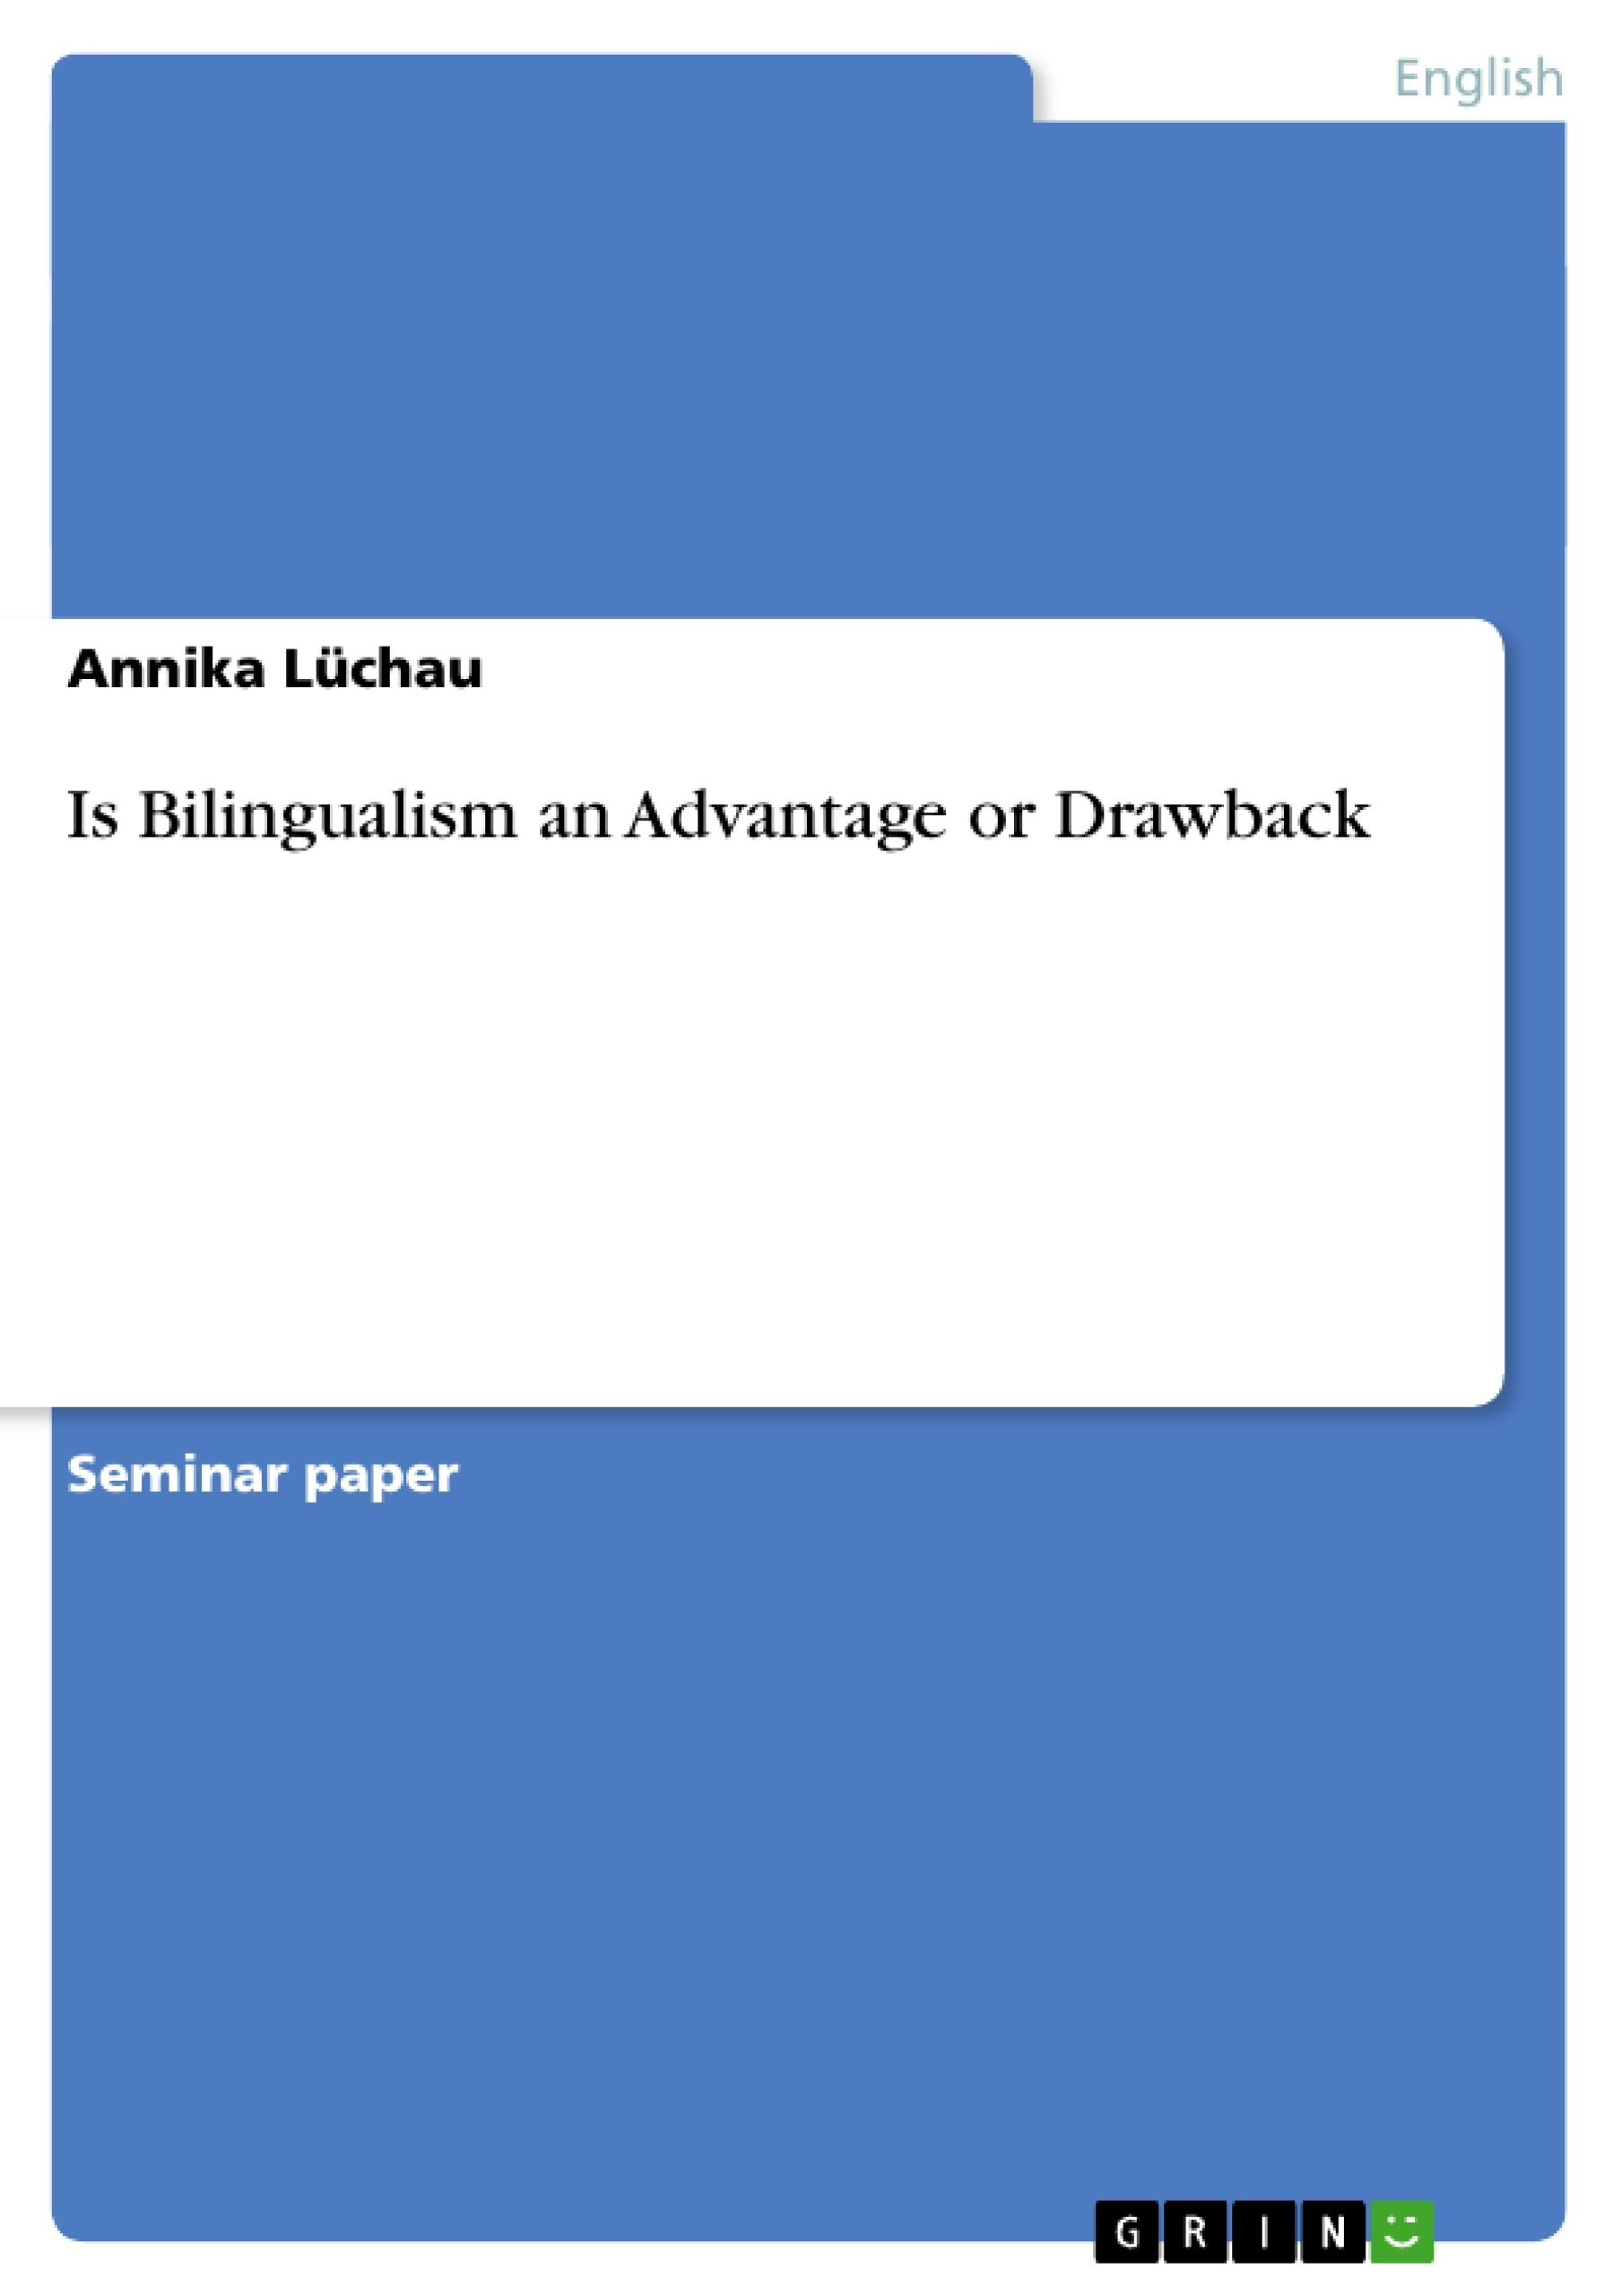 Title: Is Bilingualism an Advantage or Drawback